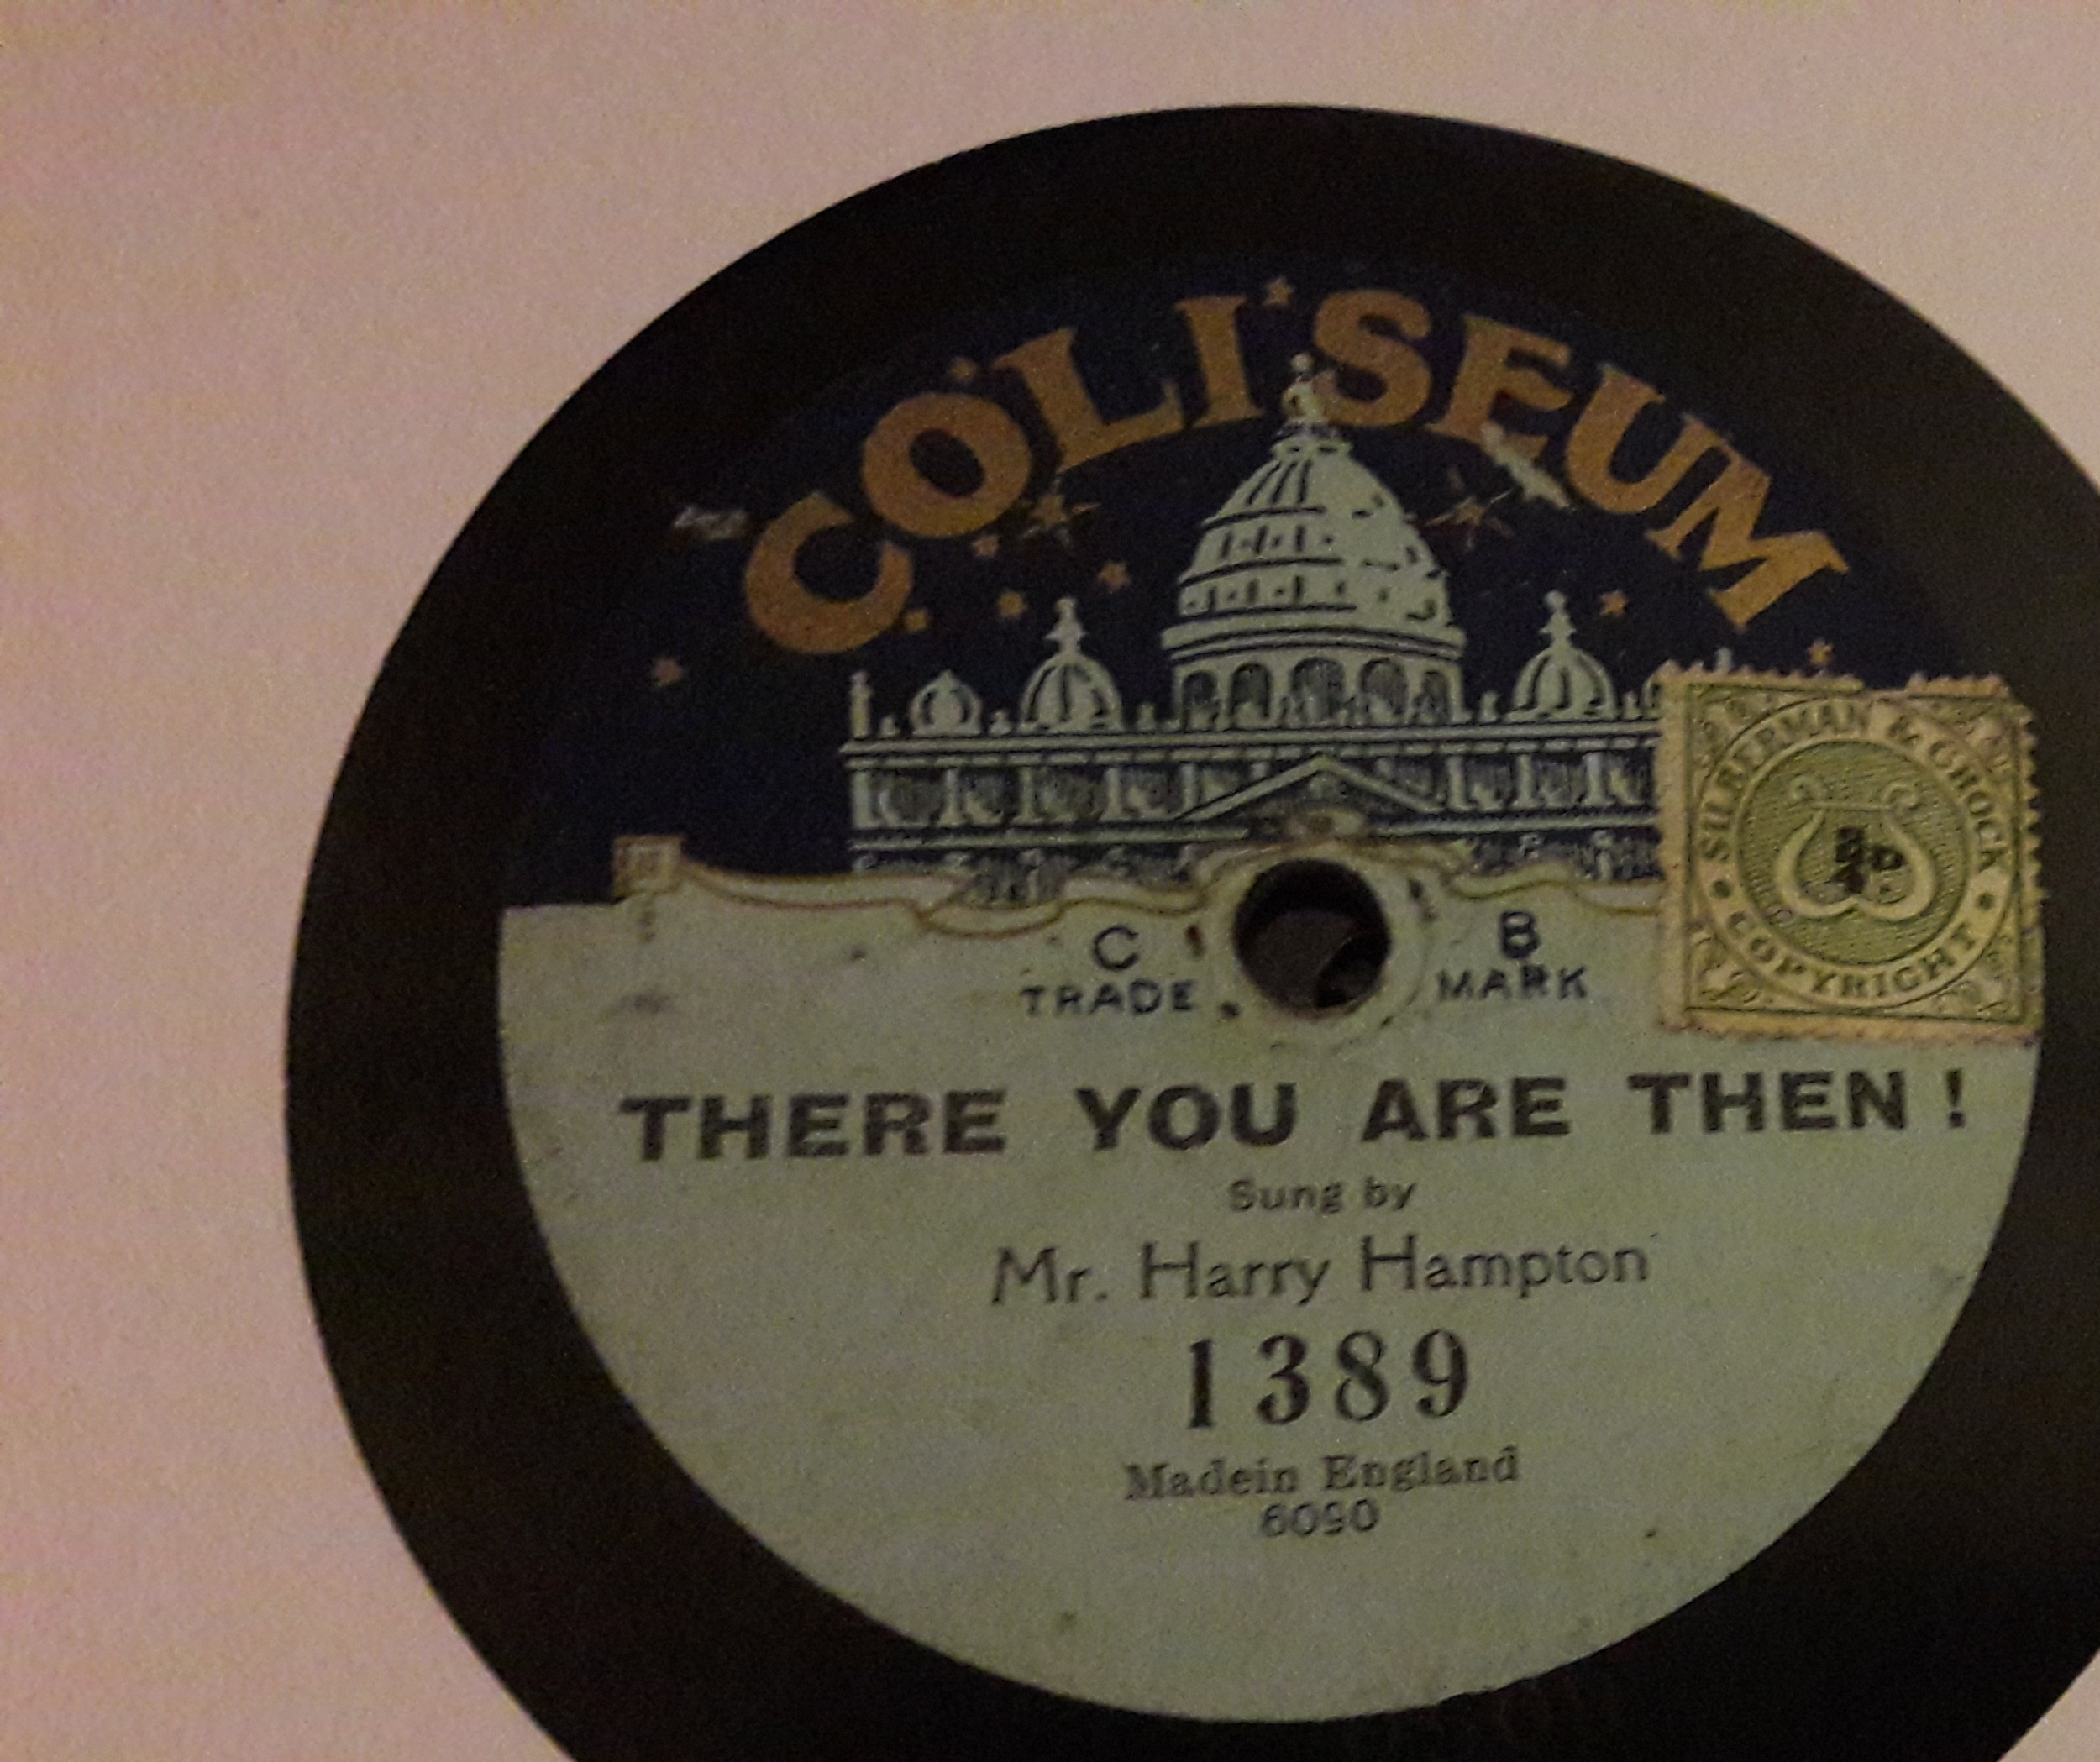 Harry Hampton - If you're going back to Dixie - Coliseum 1389